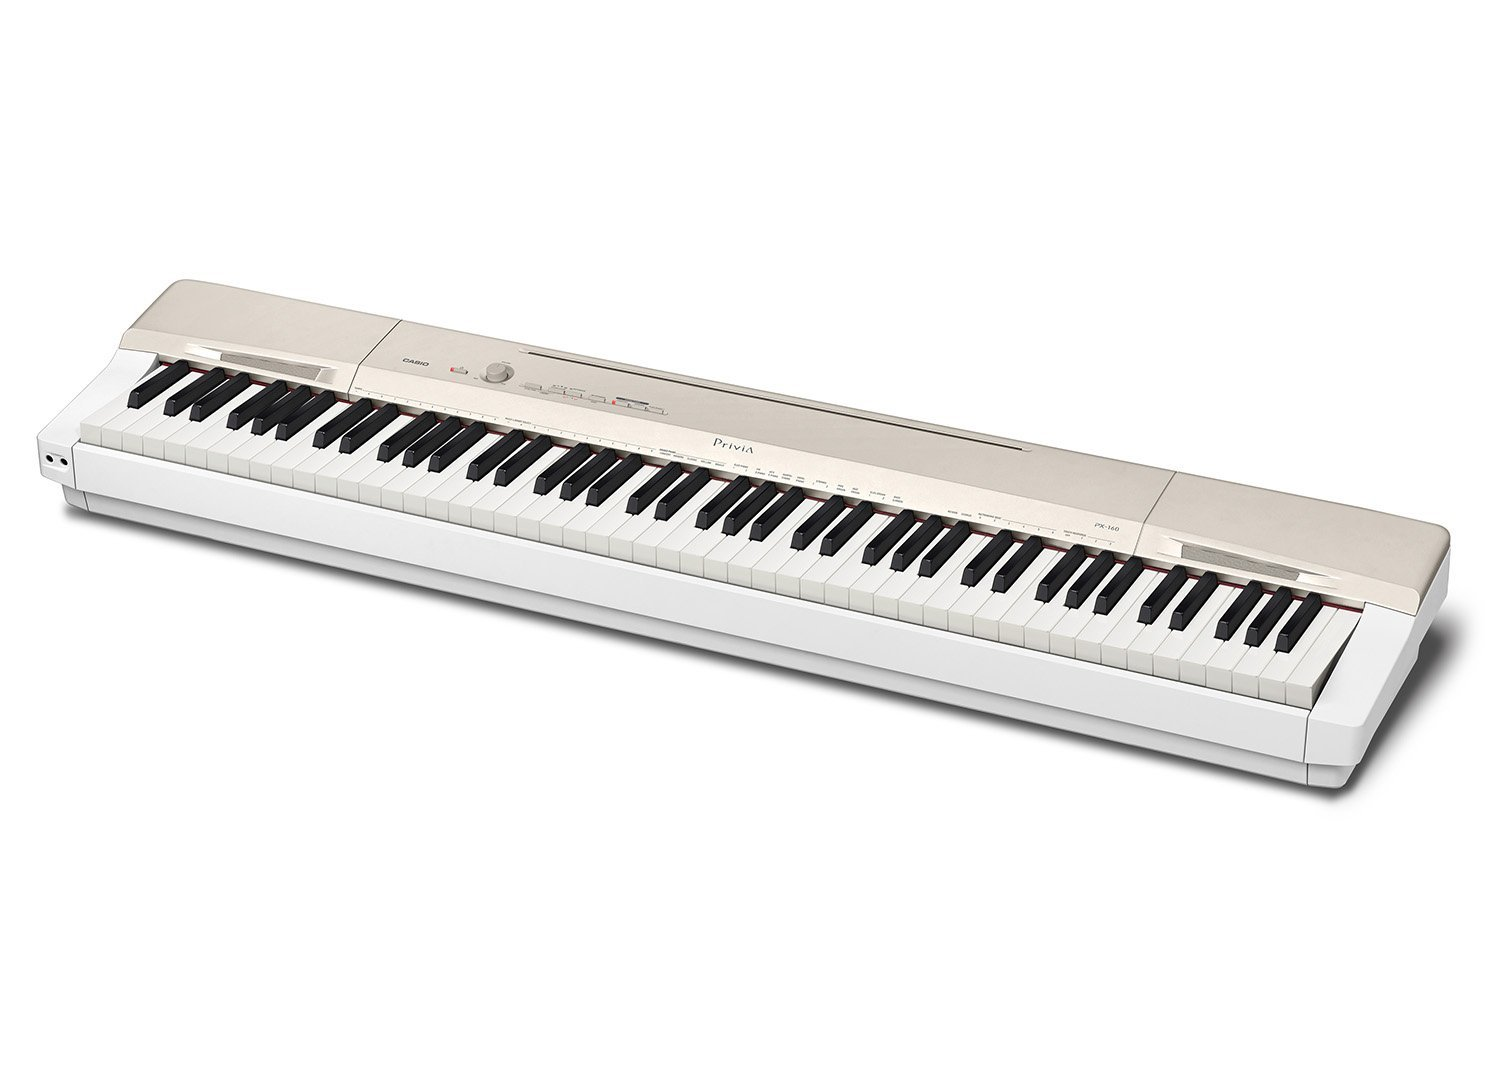 casio-privia-px160bk-review-feature-packed-digital-piano